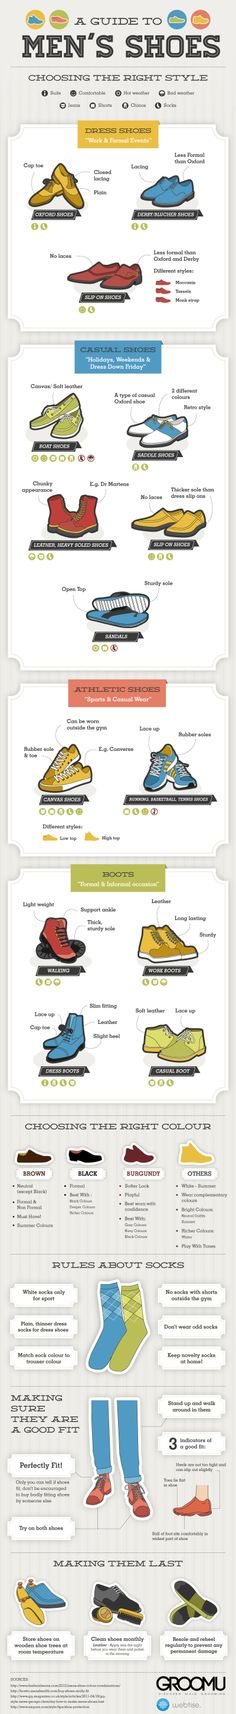 Guide to men's shoes.  #Aim2Win